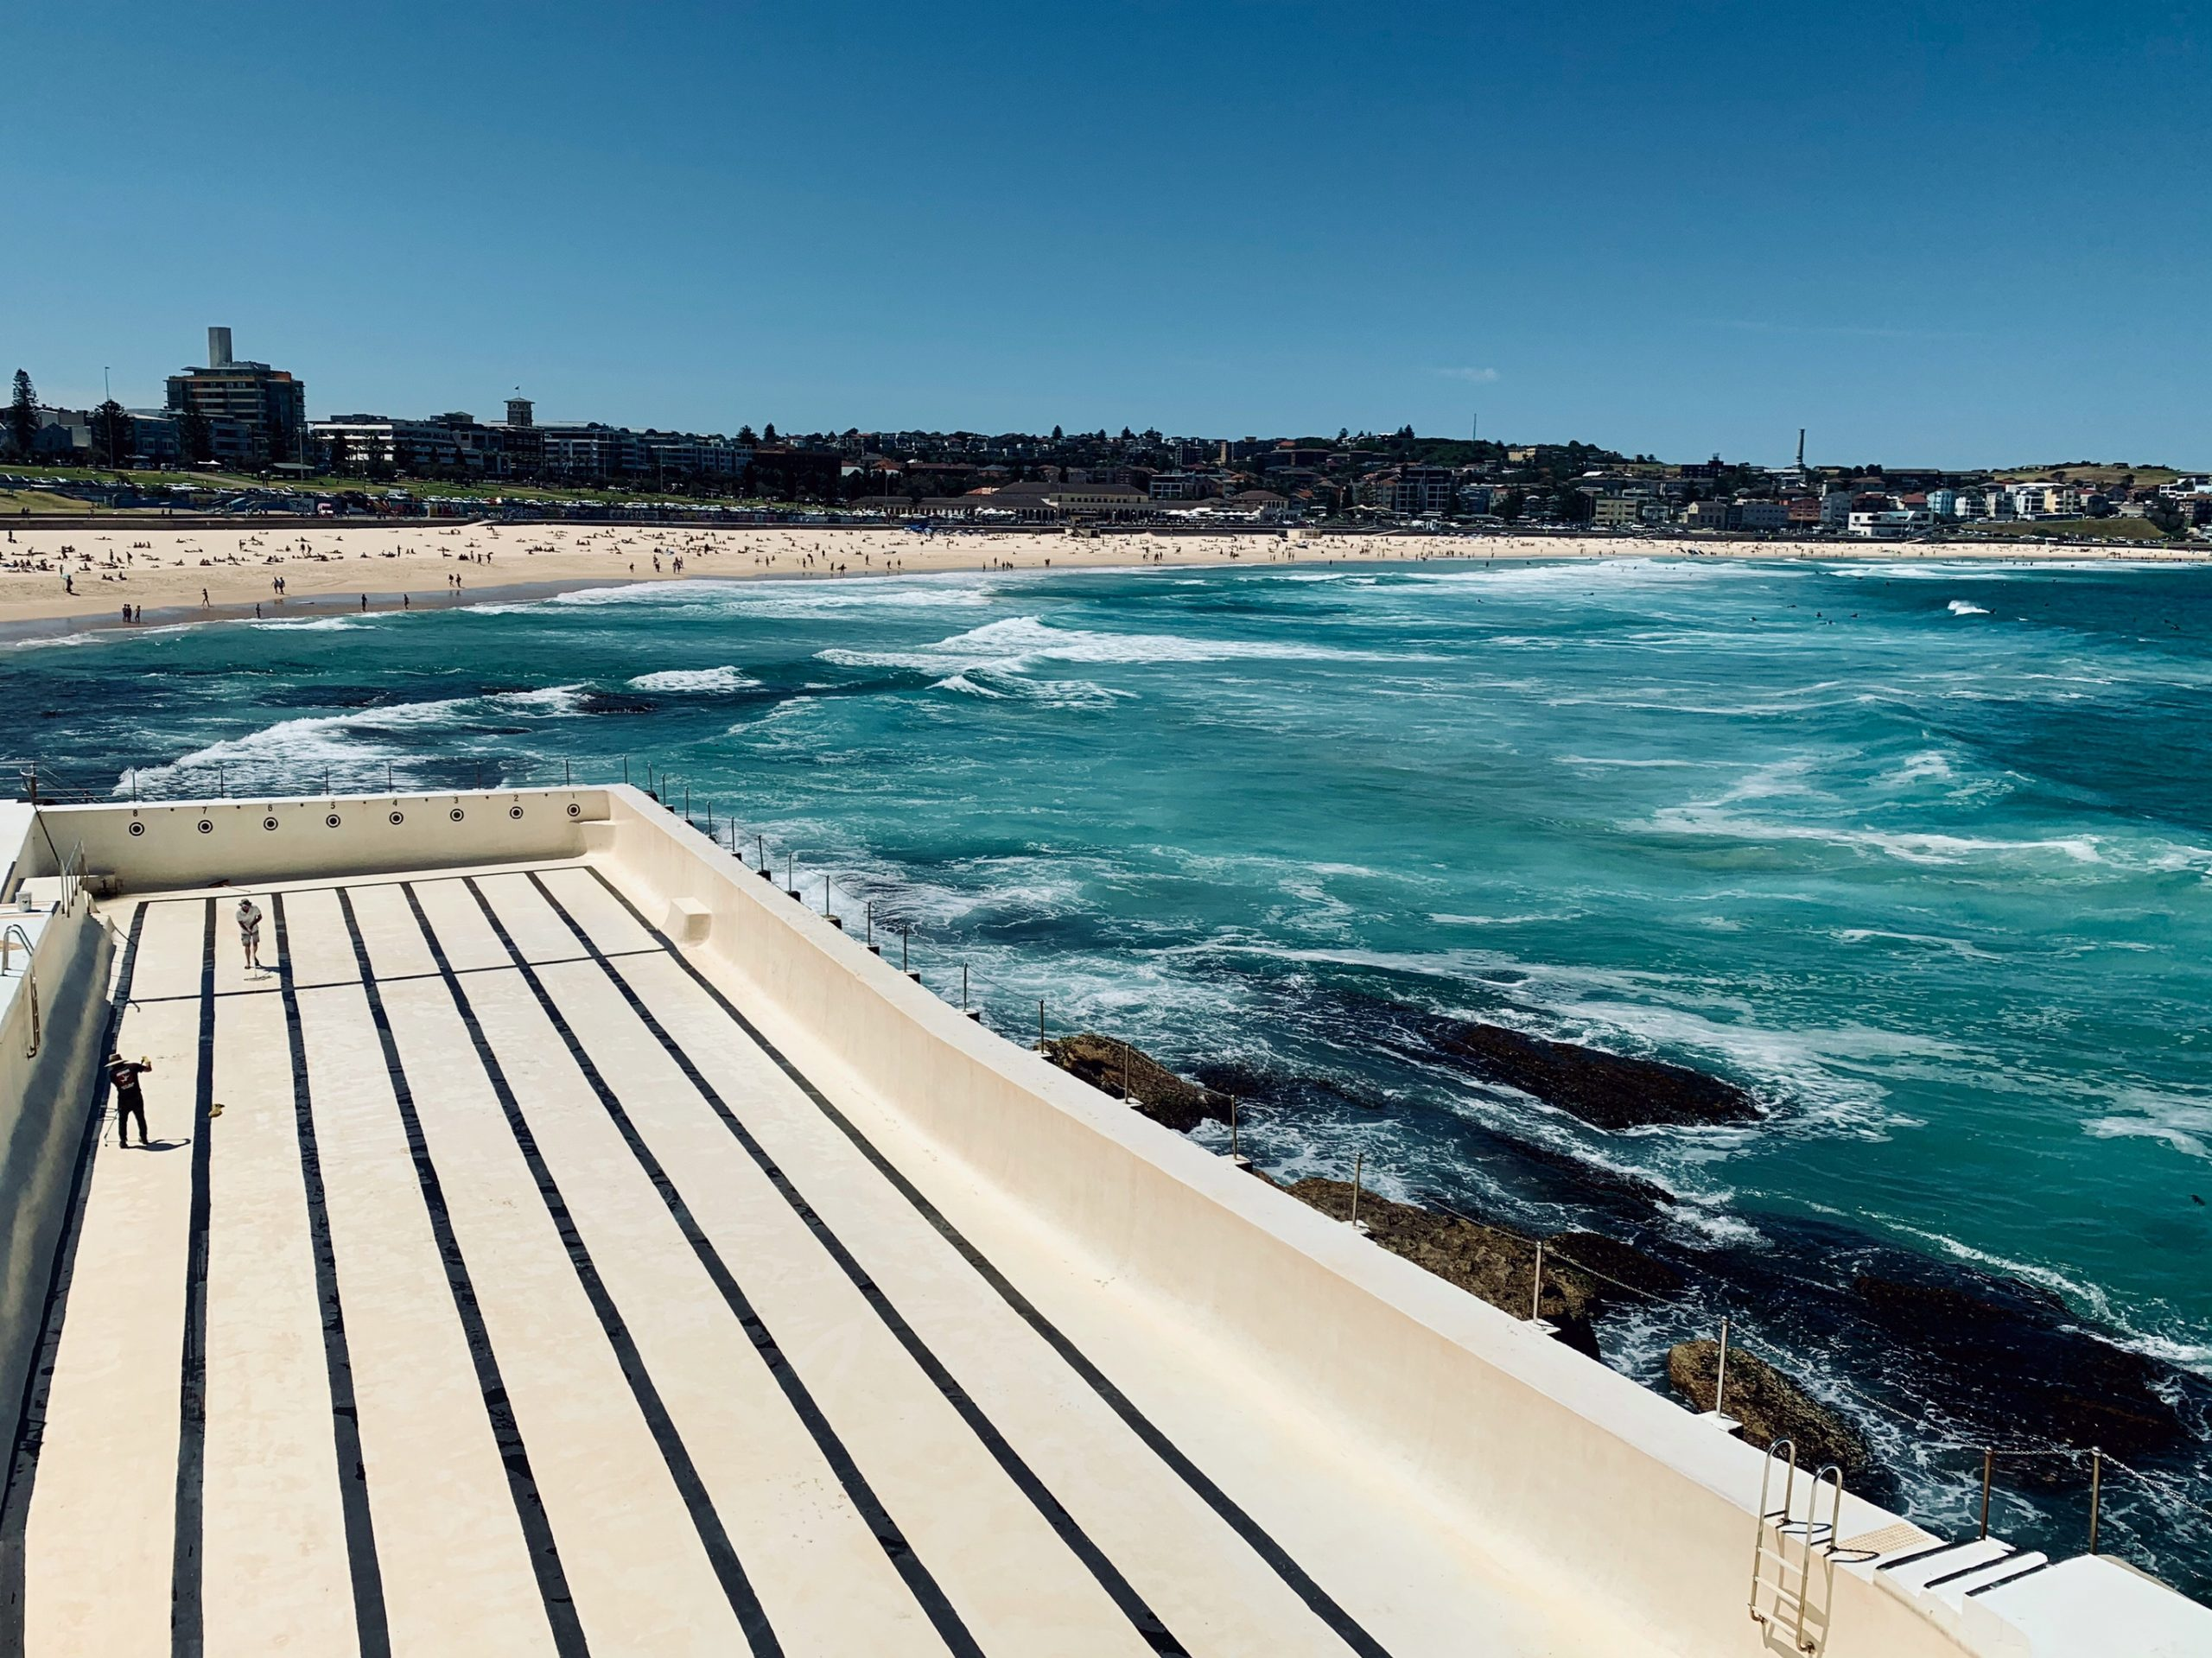 Bondi Beach and the Bondi Icebergs Pool